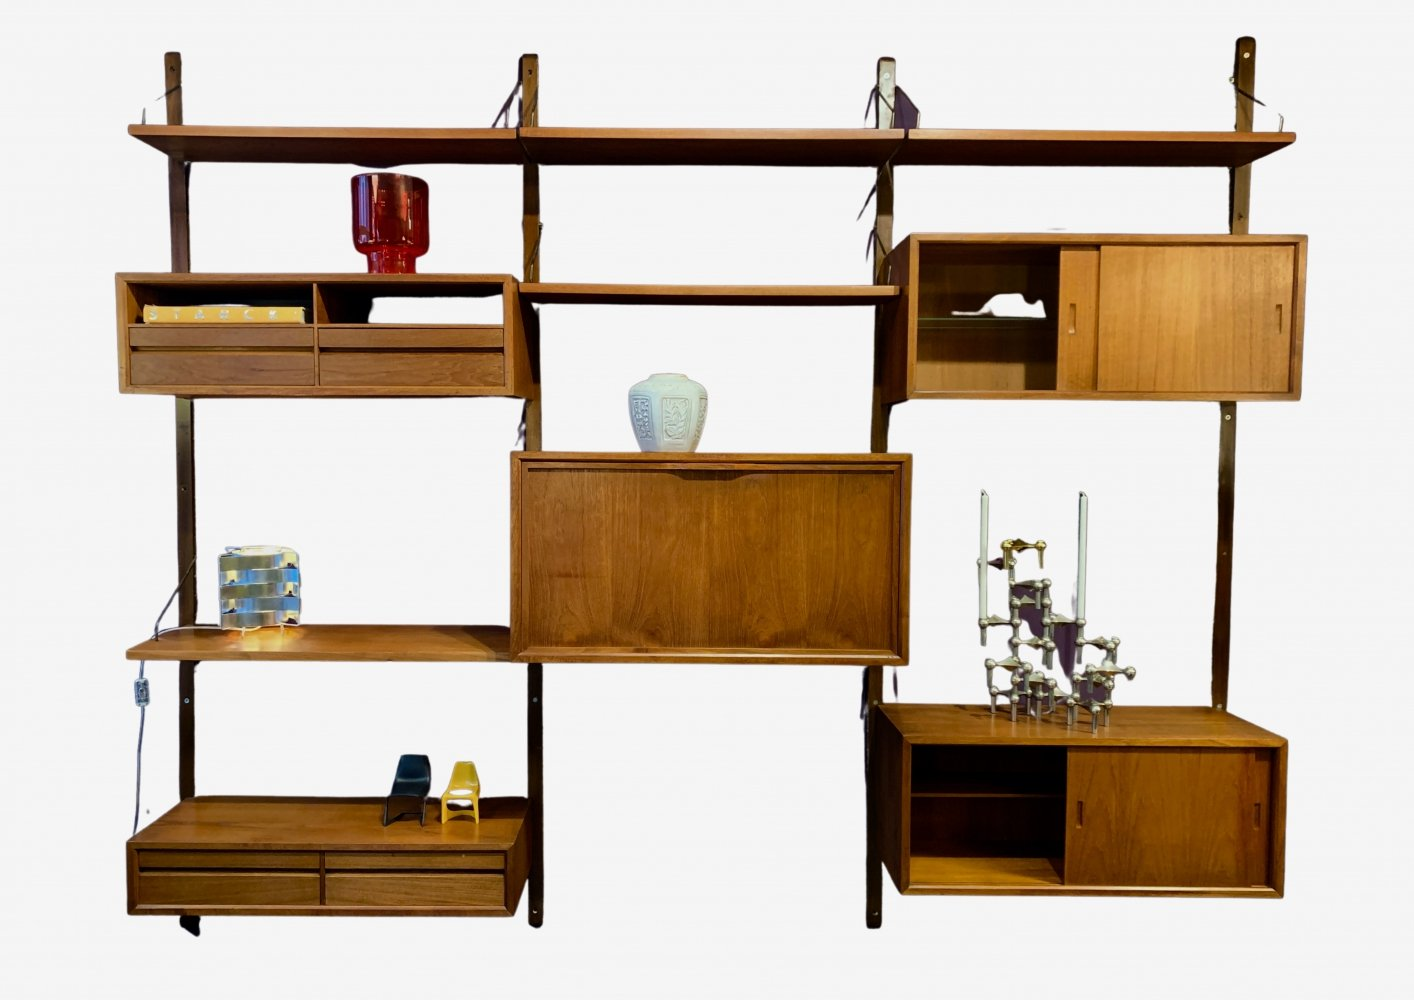 Large Cadovius wall unit with shelving, cabinets, drawers & writing desk